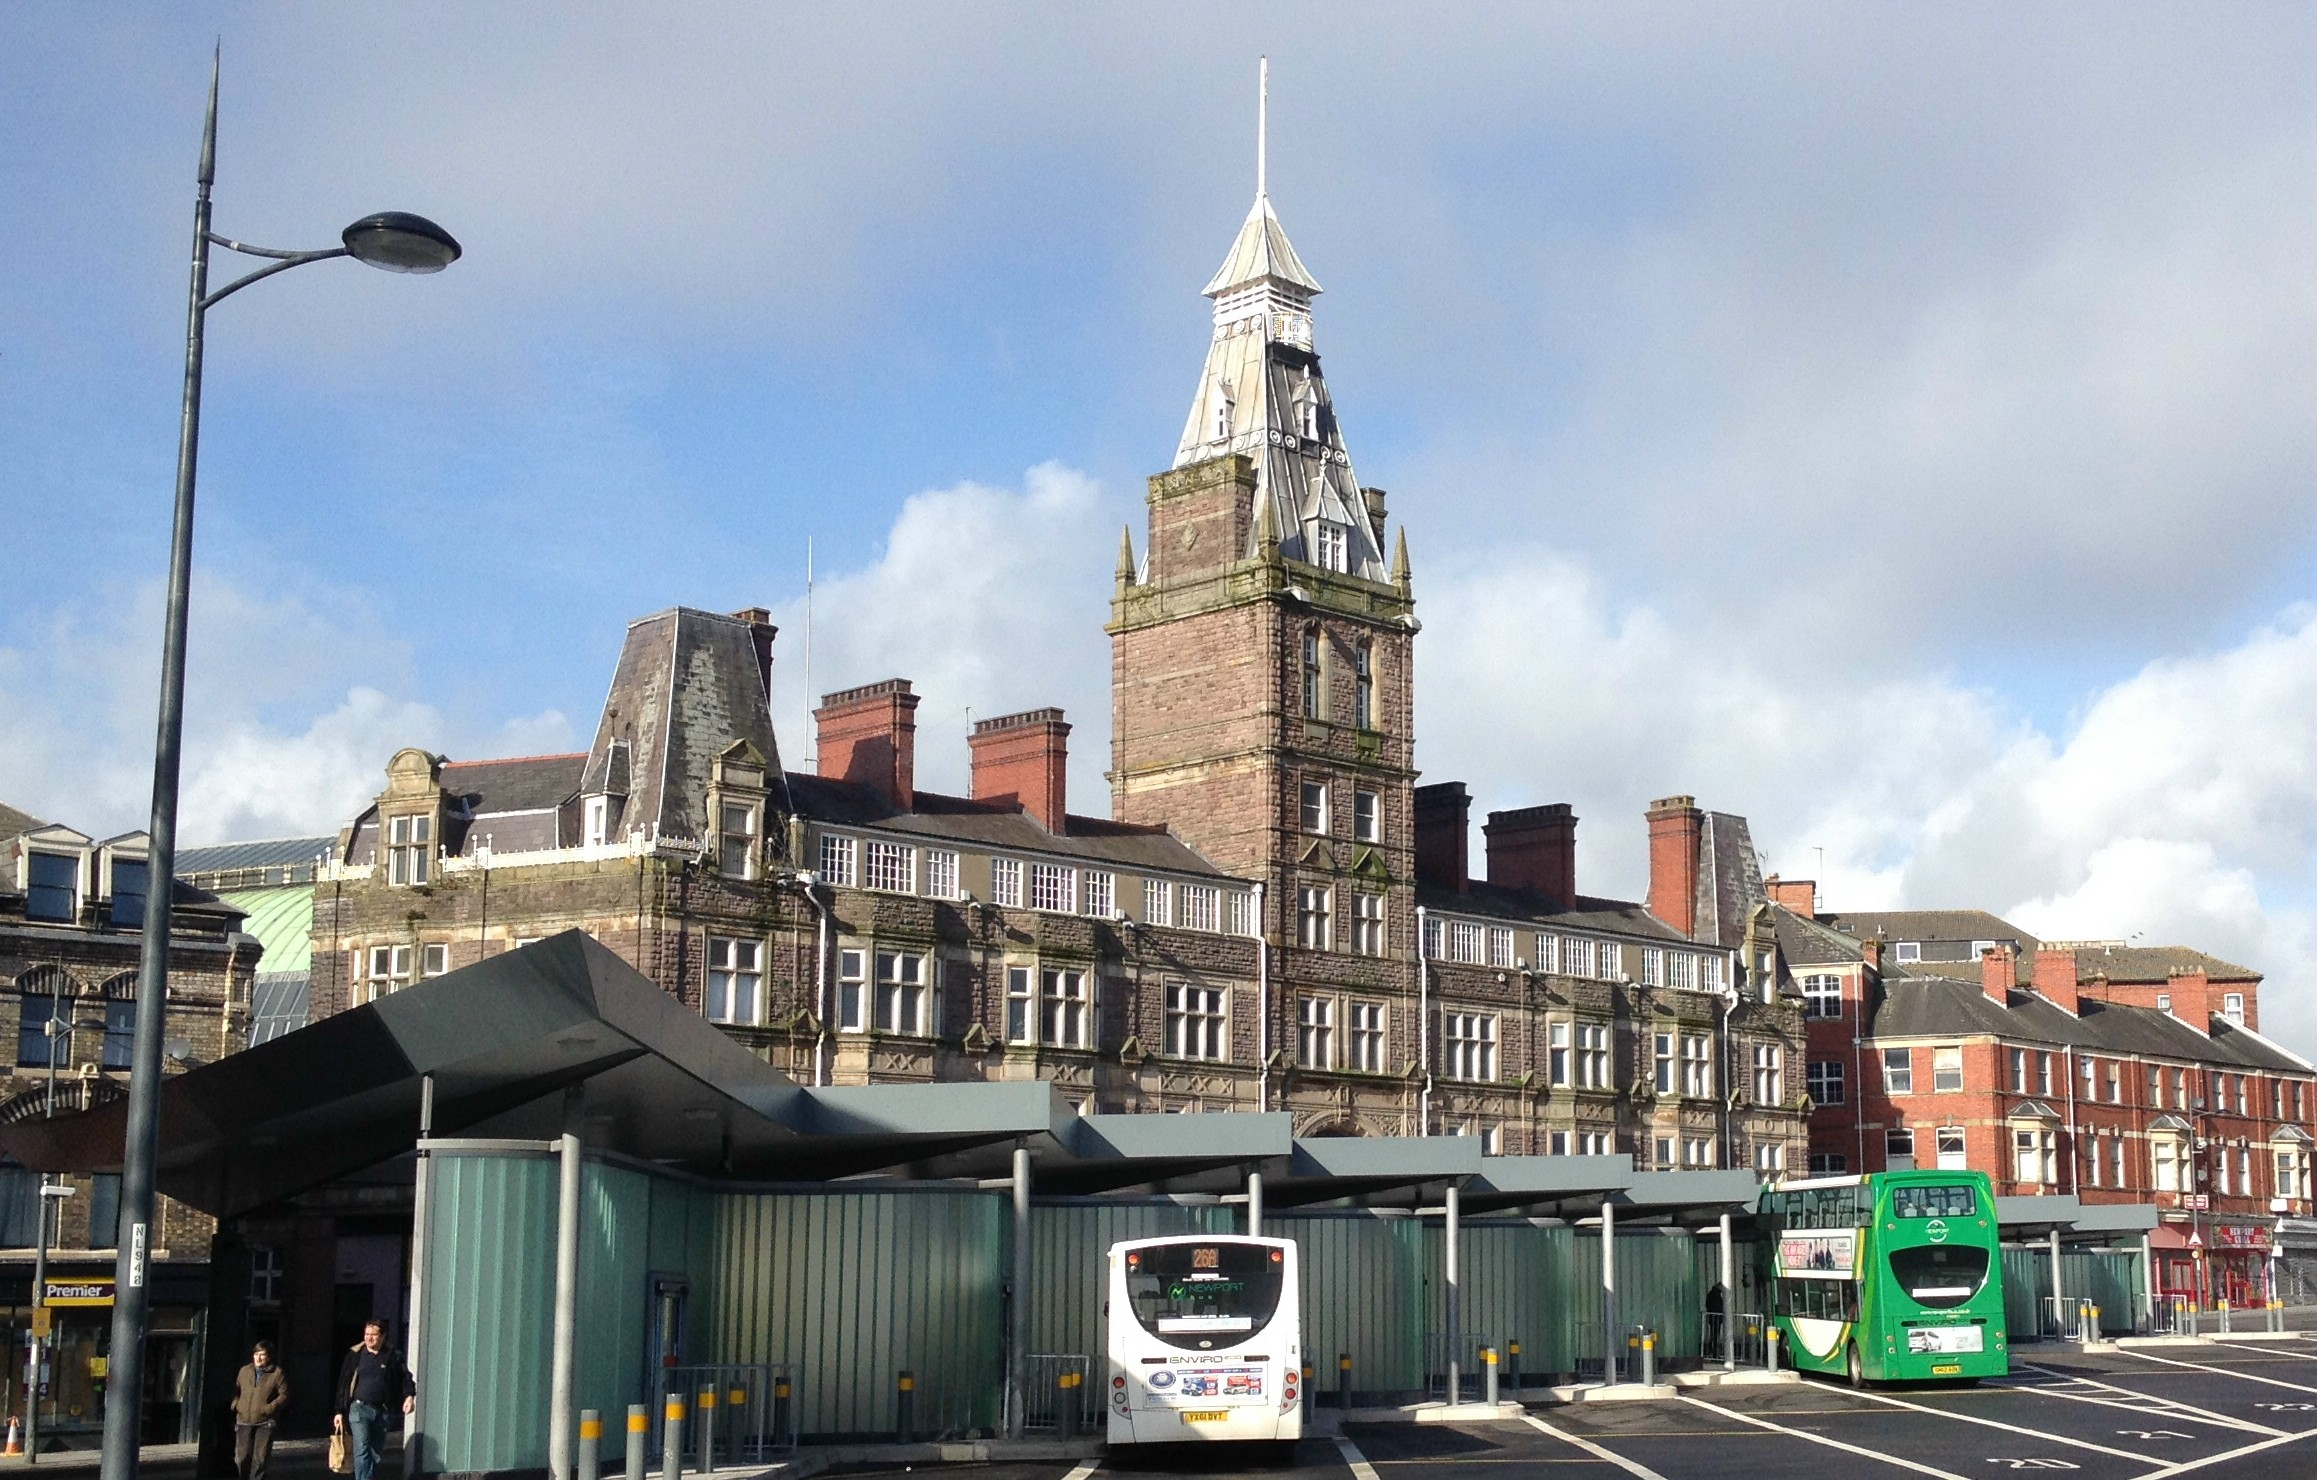 Newport central station